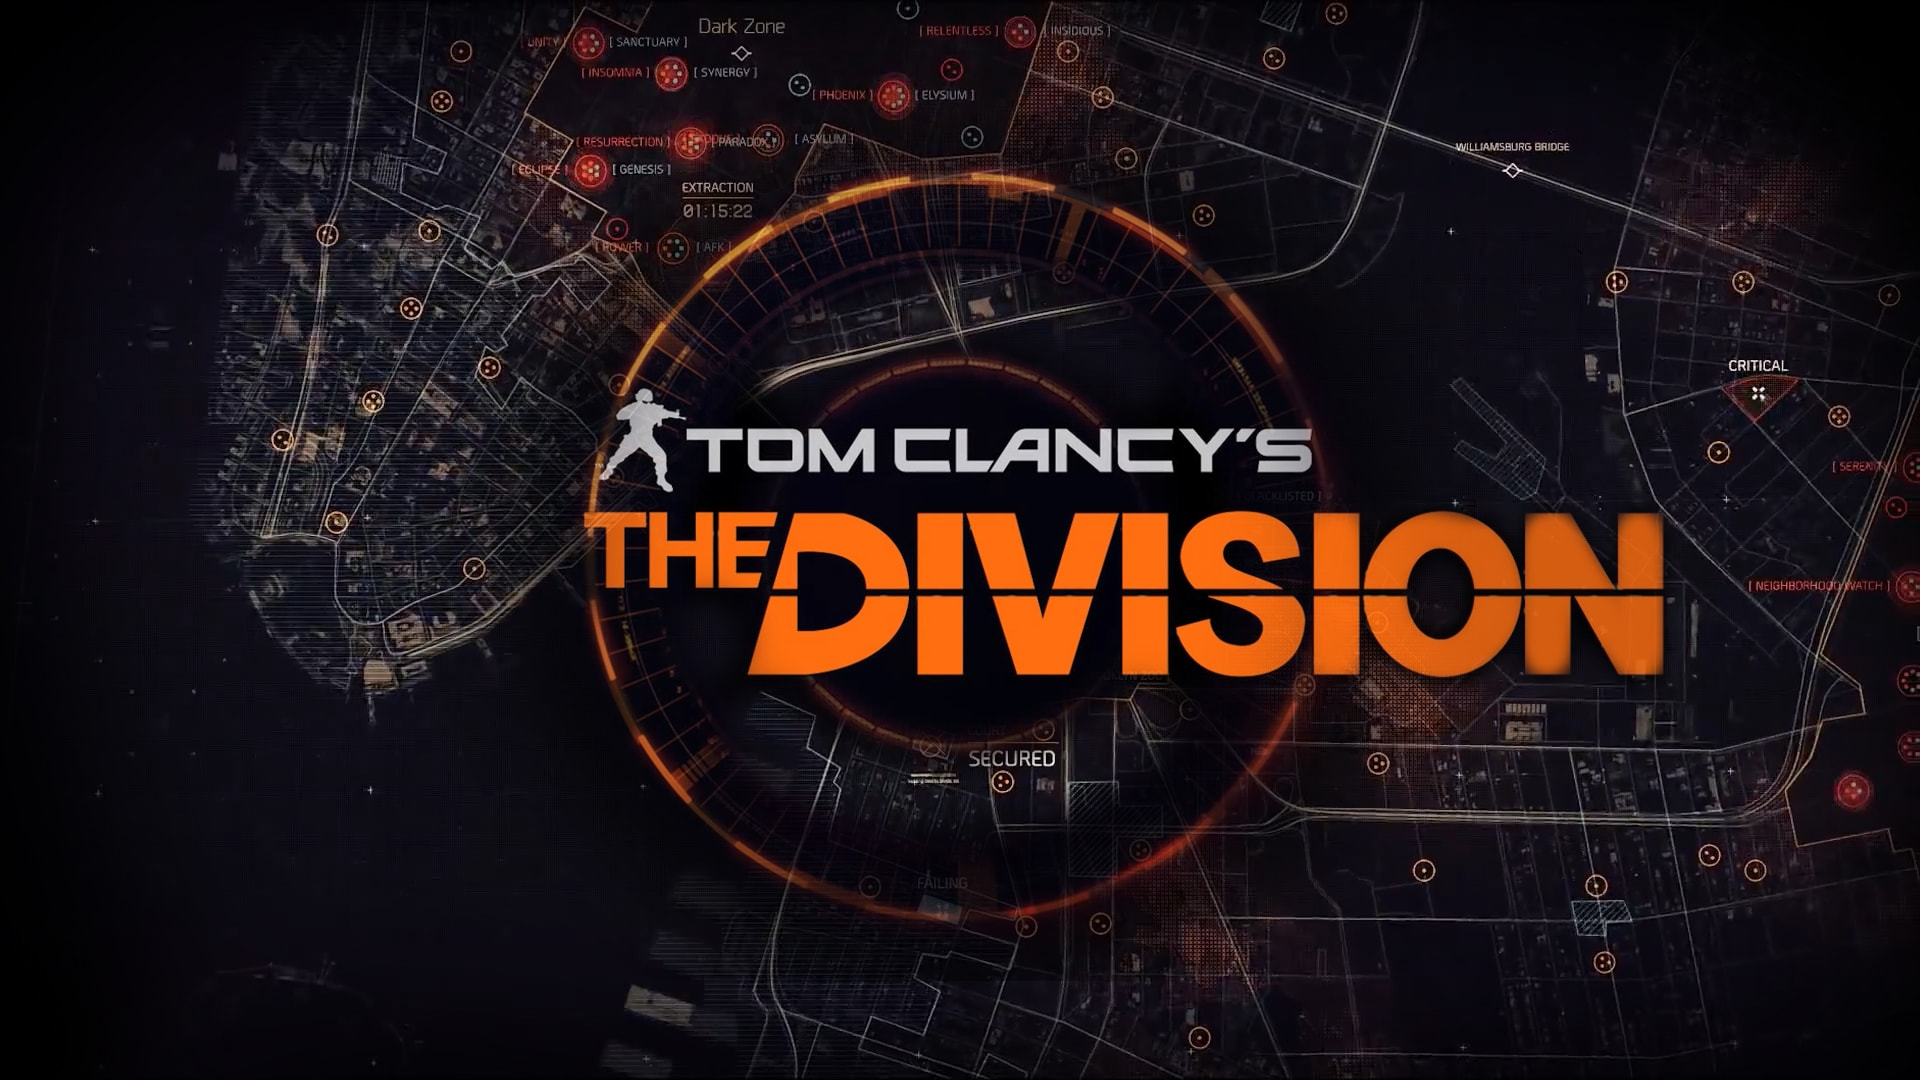 Tom Clancy's The Division Desktop wallpaper